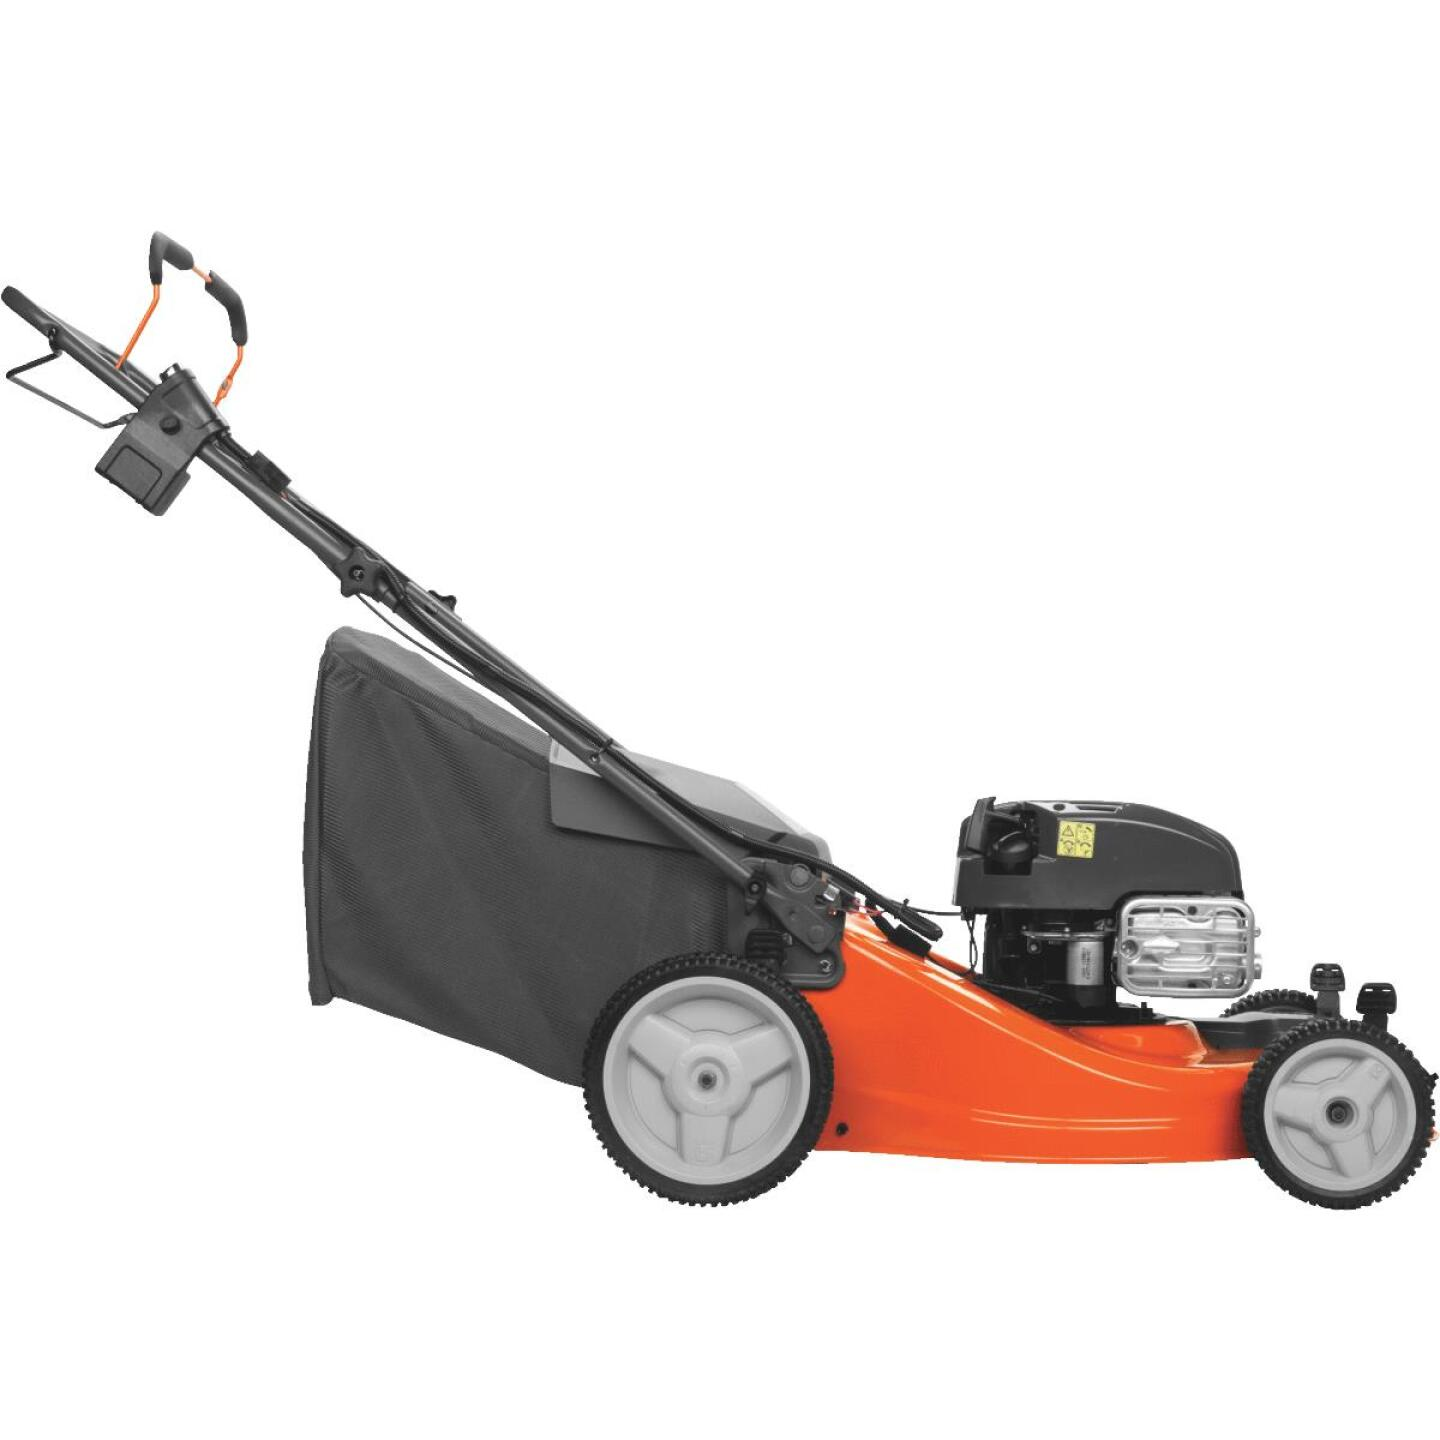 Husqvarna LC221FHE 21 In. 163cc 3-In-1 Self-Propelled Gas Lawn Mower Image 2